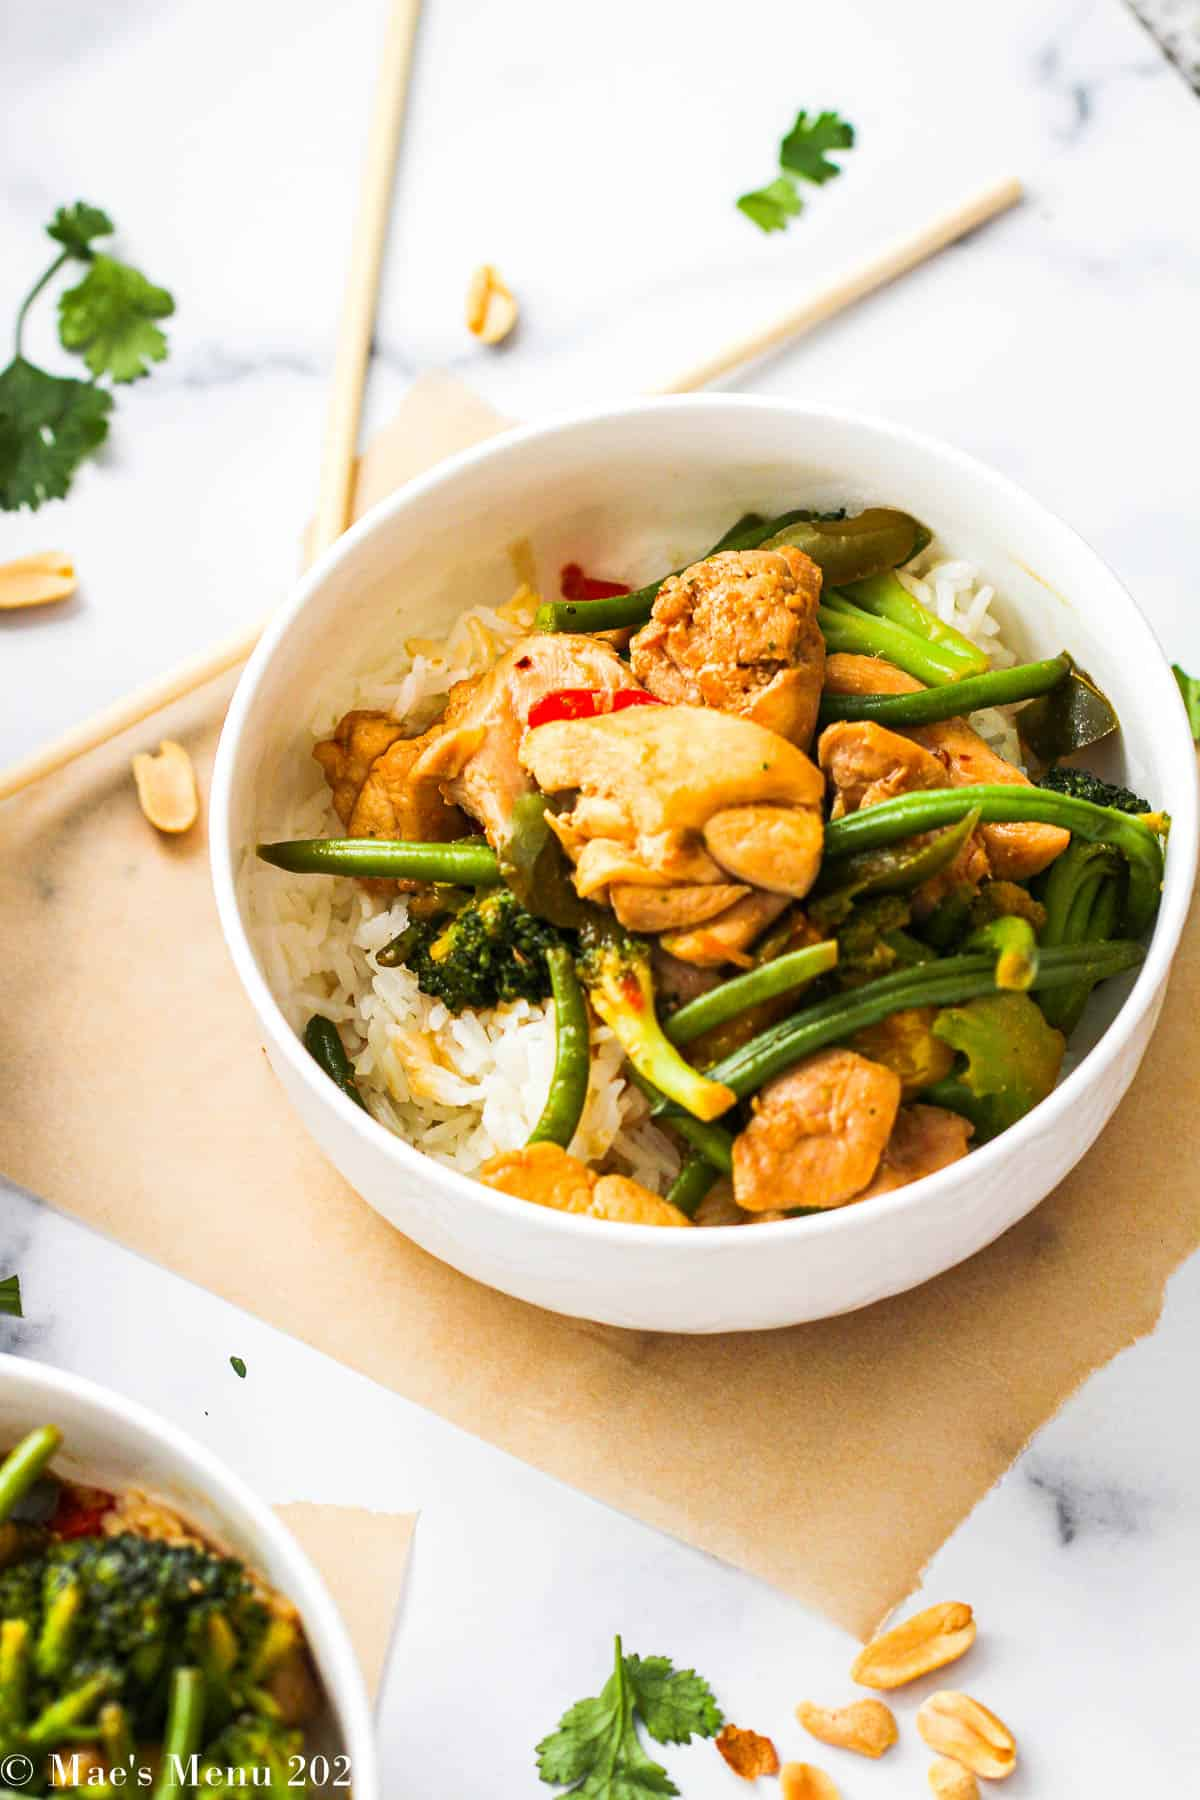 An up-close bowl of chicken and vegetable stir fry in a white bowl